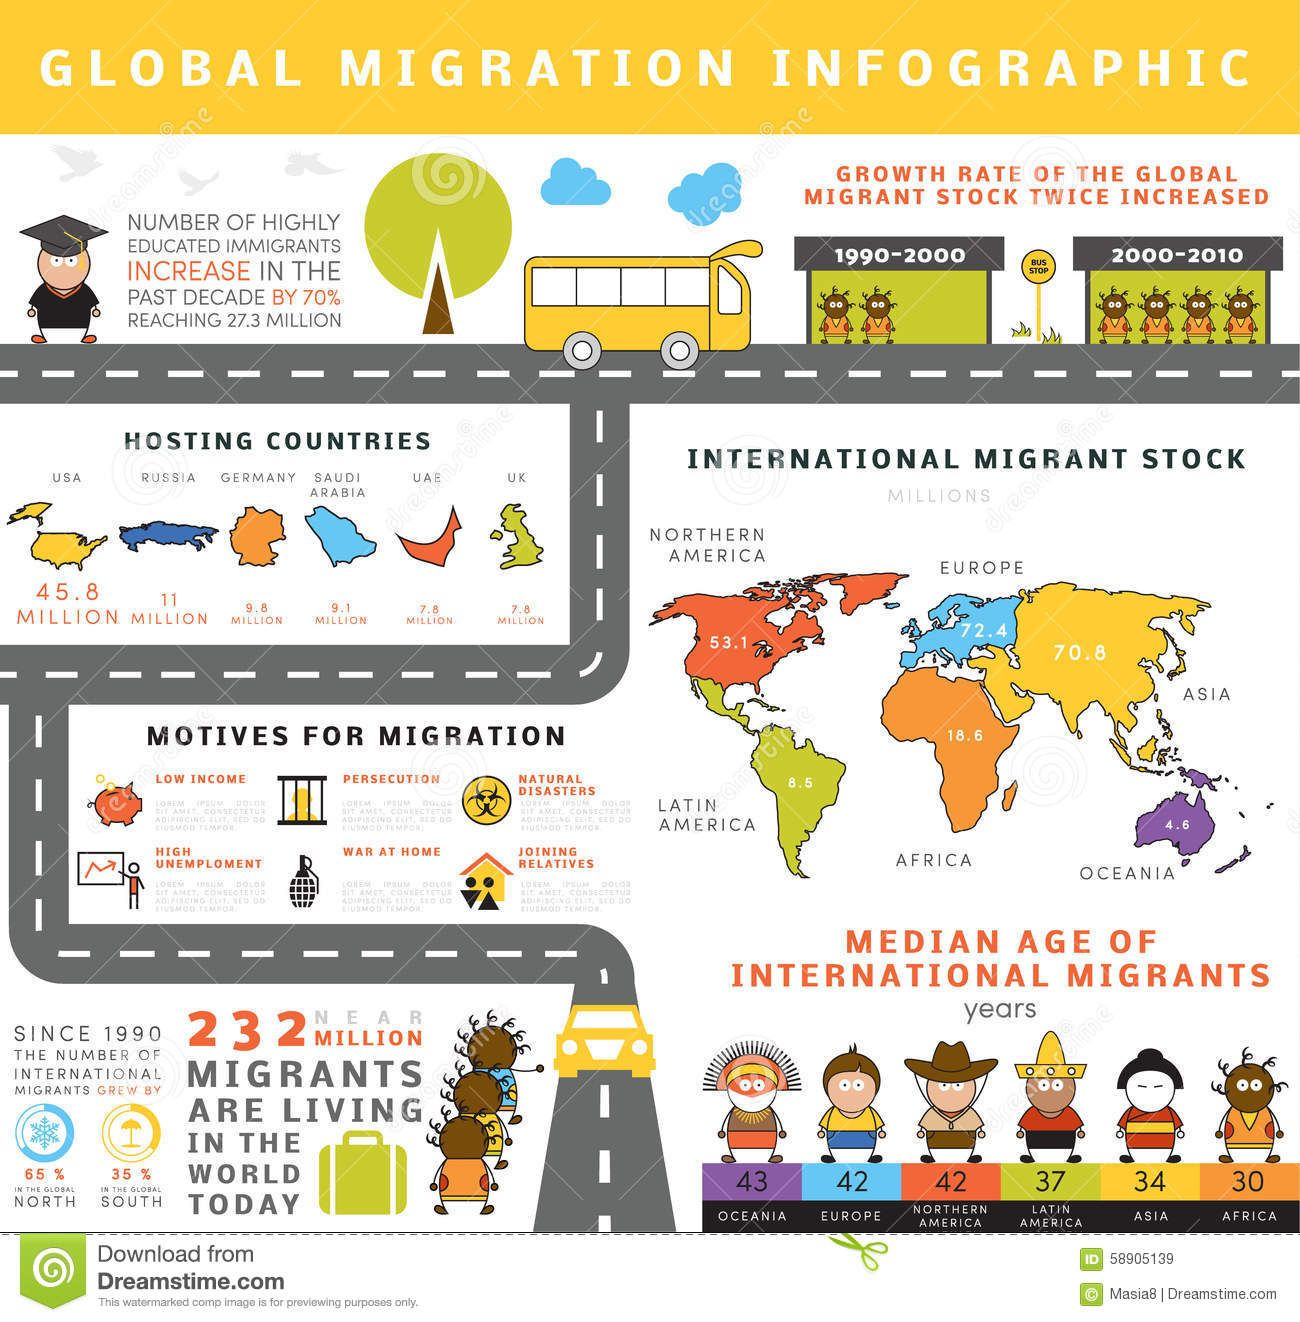 Global Migration Infographic